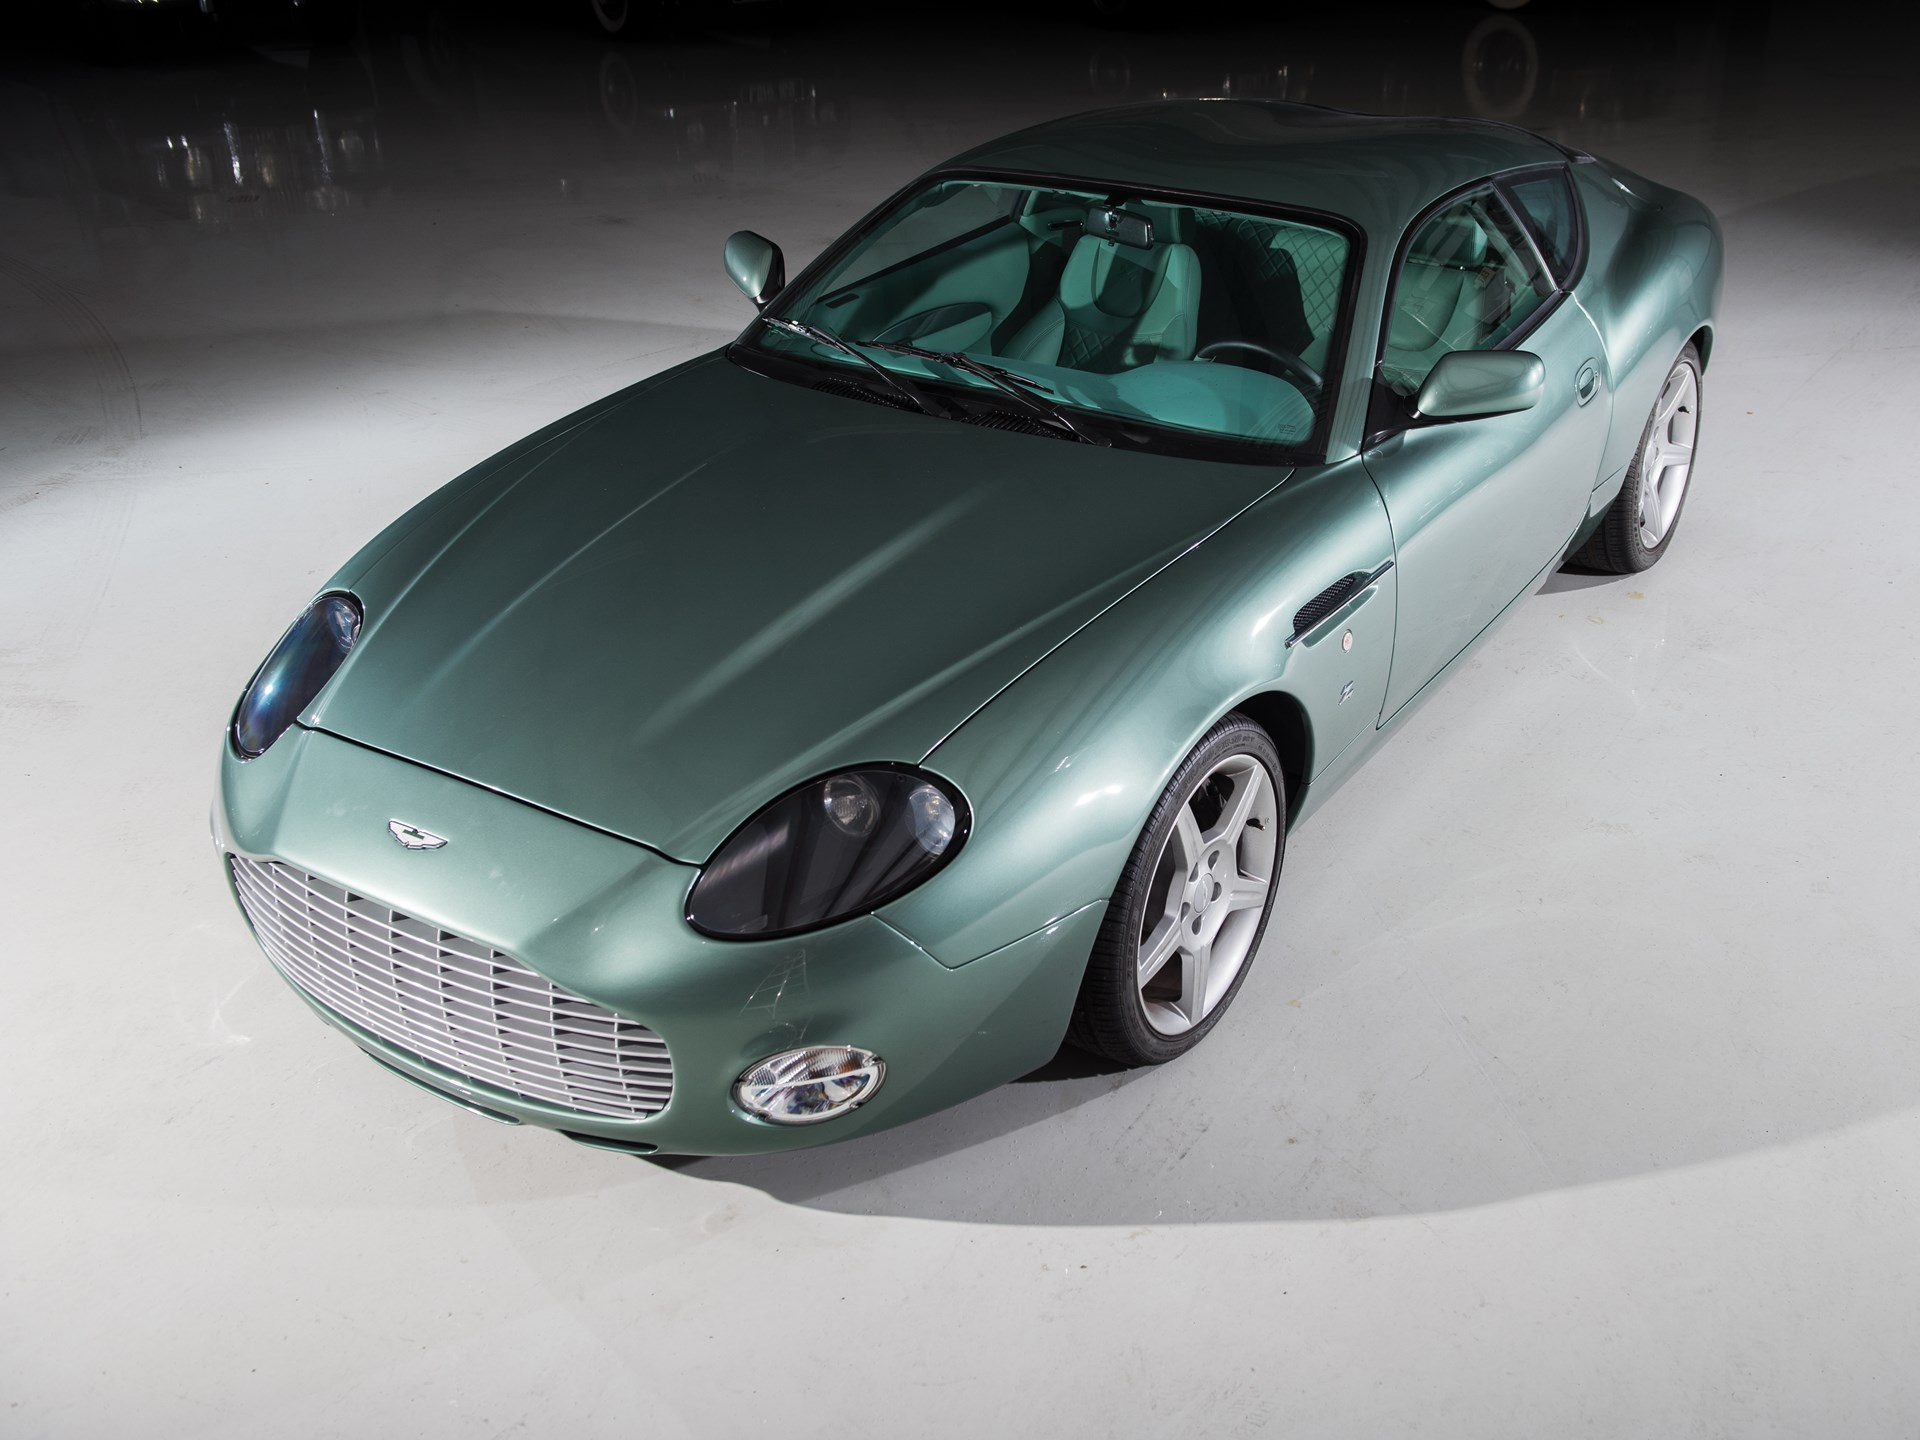 2003 Aston Martin DB7 Zagato 3/4 high